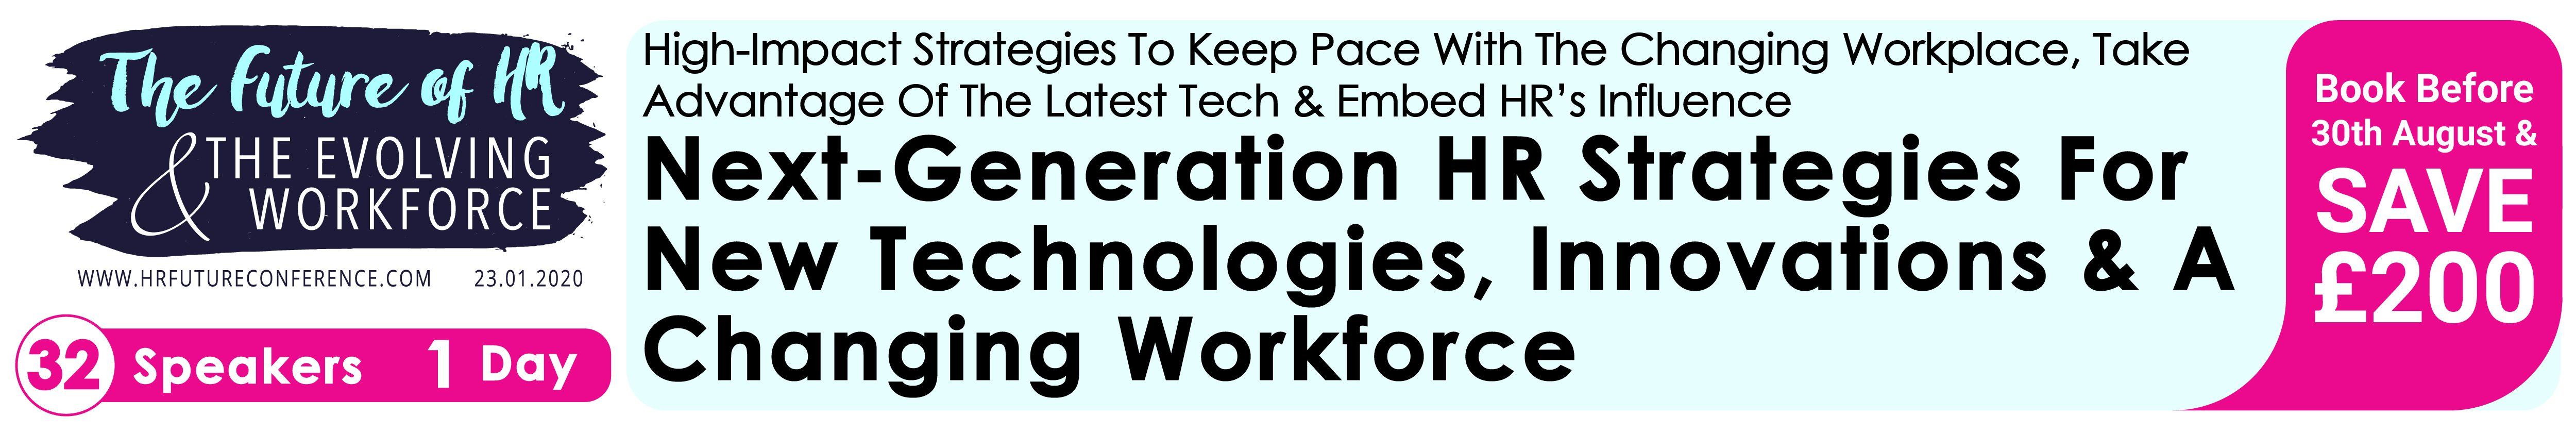 Future Of HR & Evolving Workforce Conference